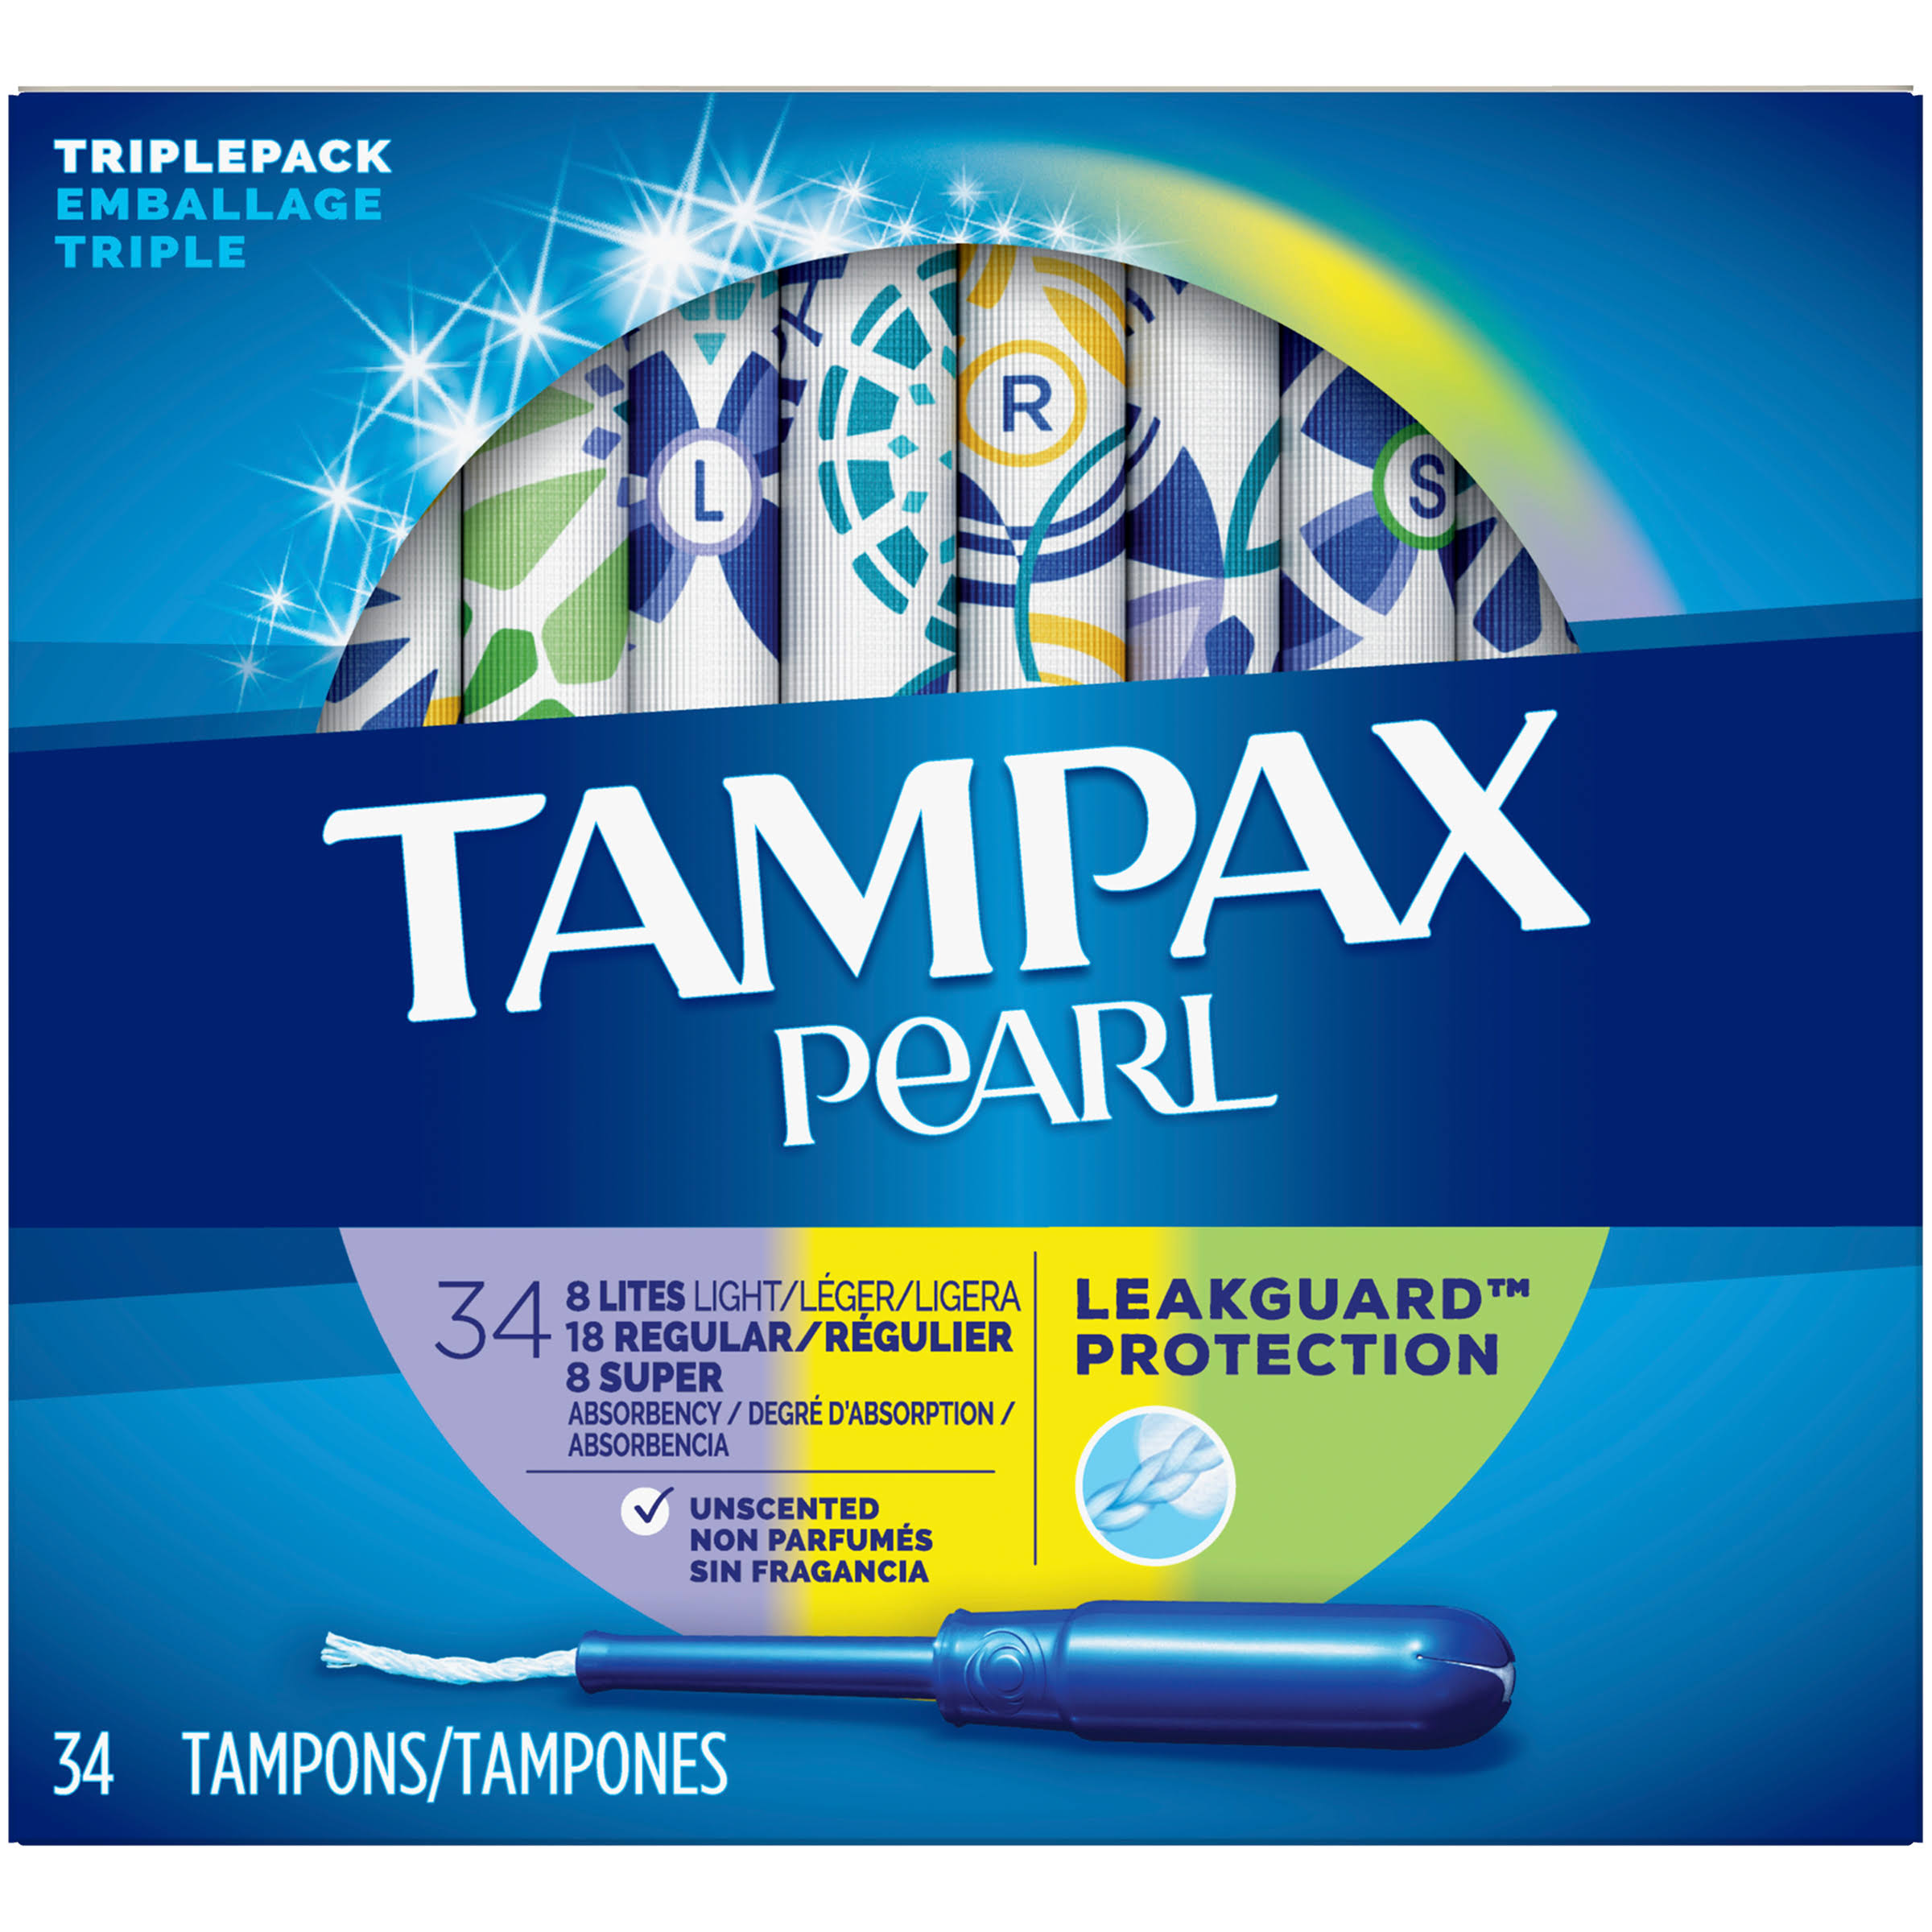 Tampax Pearl Plastic Tampons - Triple Pack with Light, Regular and Super Absorbency, Unscented, 34ct